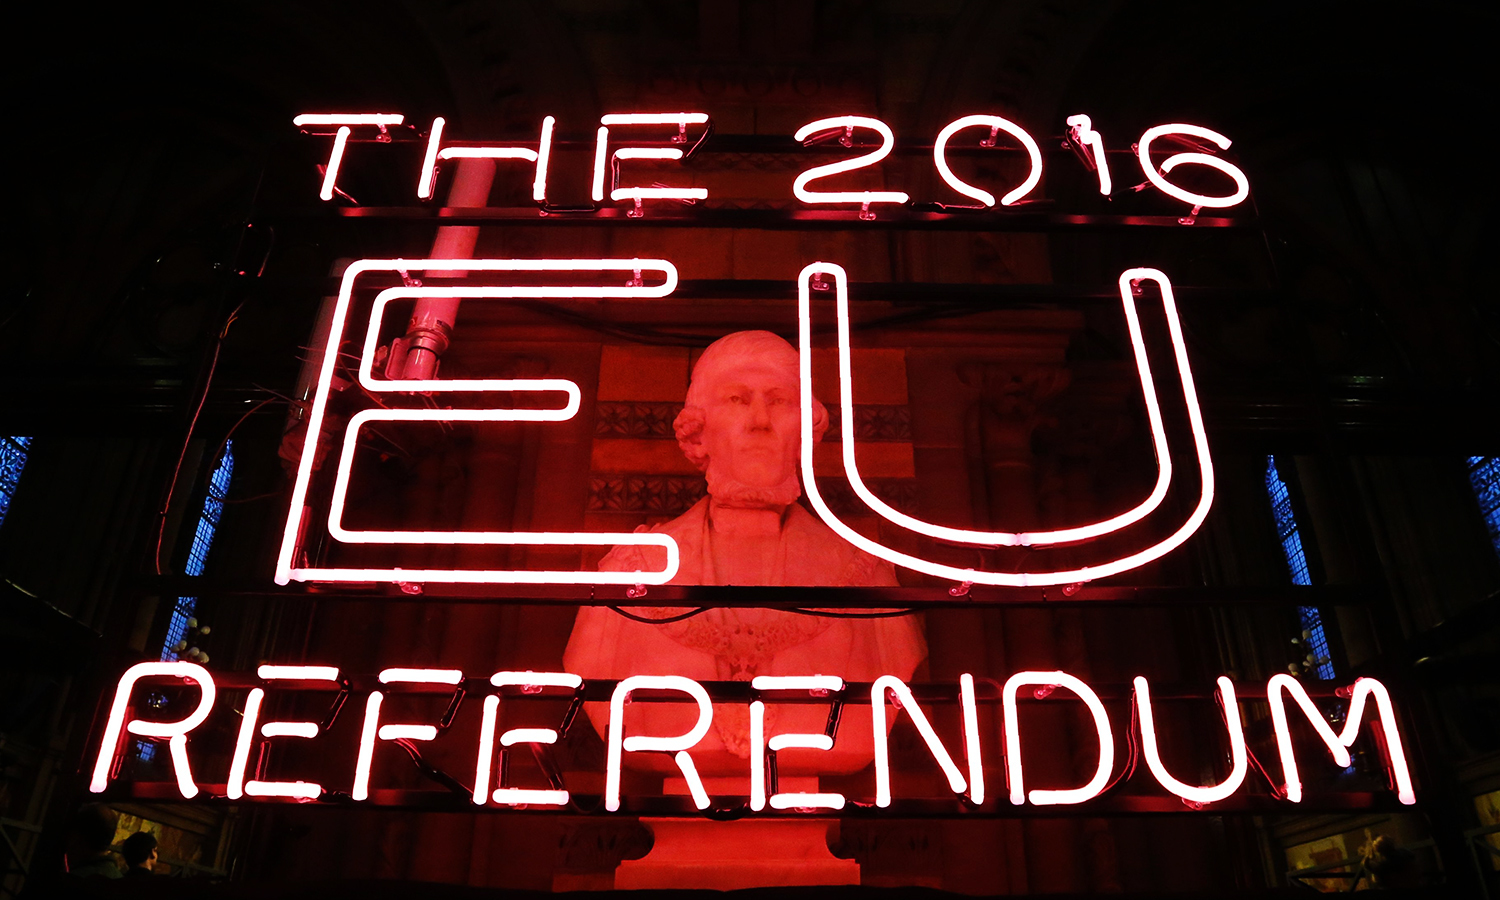 A neon sign for the 2016 referendum is attached to the doors of the announcement hall in Manchester Town Hall , northwest England on June 23, 2016 where the final result of a referendum on whether the UK will remain or stay in the European Union (EU) will be announced. Britain has voted to leave the European Union by 52 percent to 48 percent, the BBC reported on Friday, after nearly all the results had been counted. / AFP PHOTO / POOL / Rob Stothard